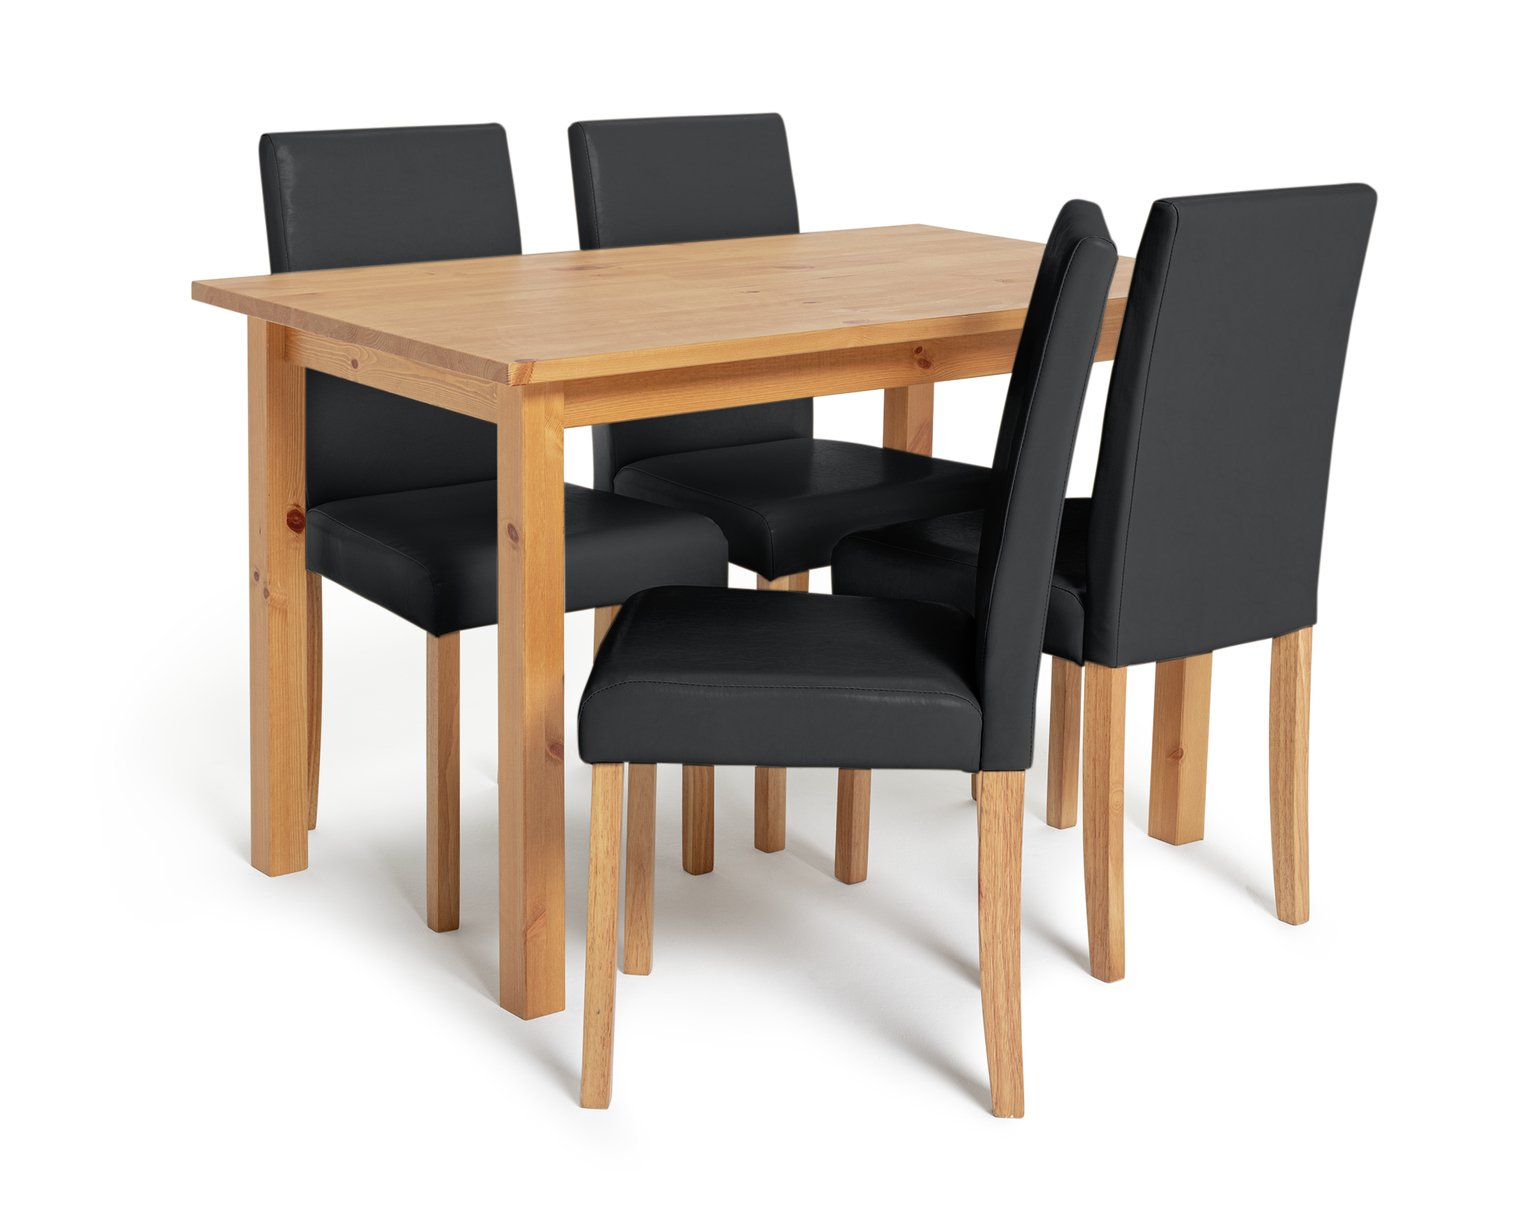 Argos Home Ashdon Solid Wood Table & 4 Mid Back Chairs - Blk